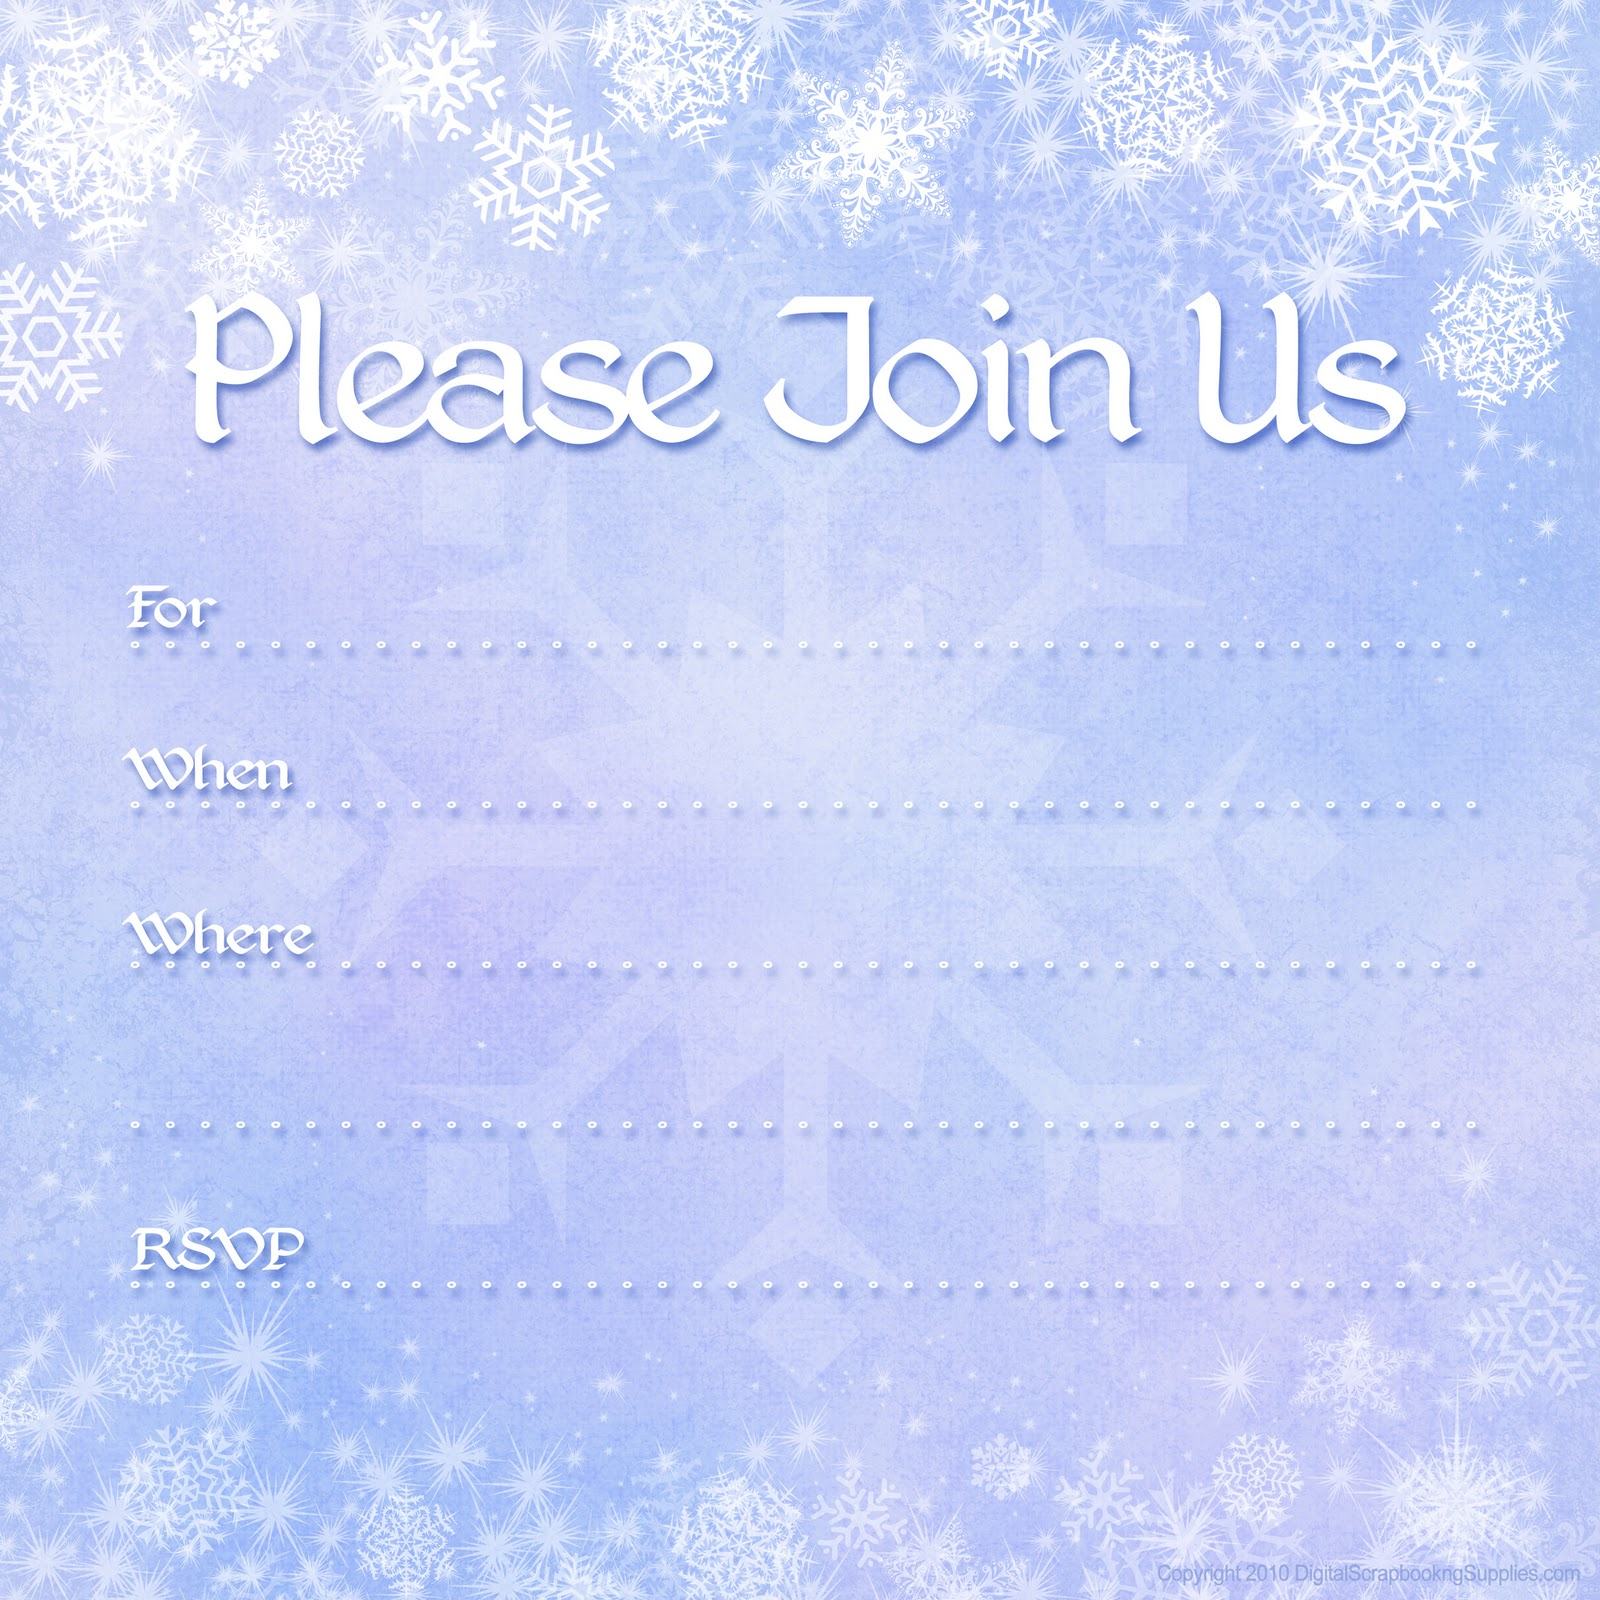 Free printable party invitations free winter holiday invitations for Free holiday invite templates